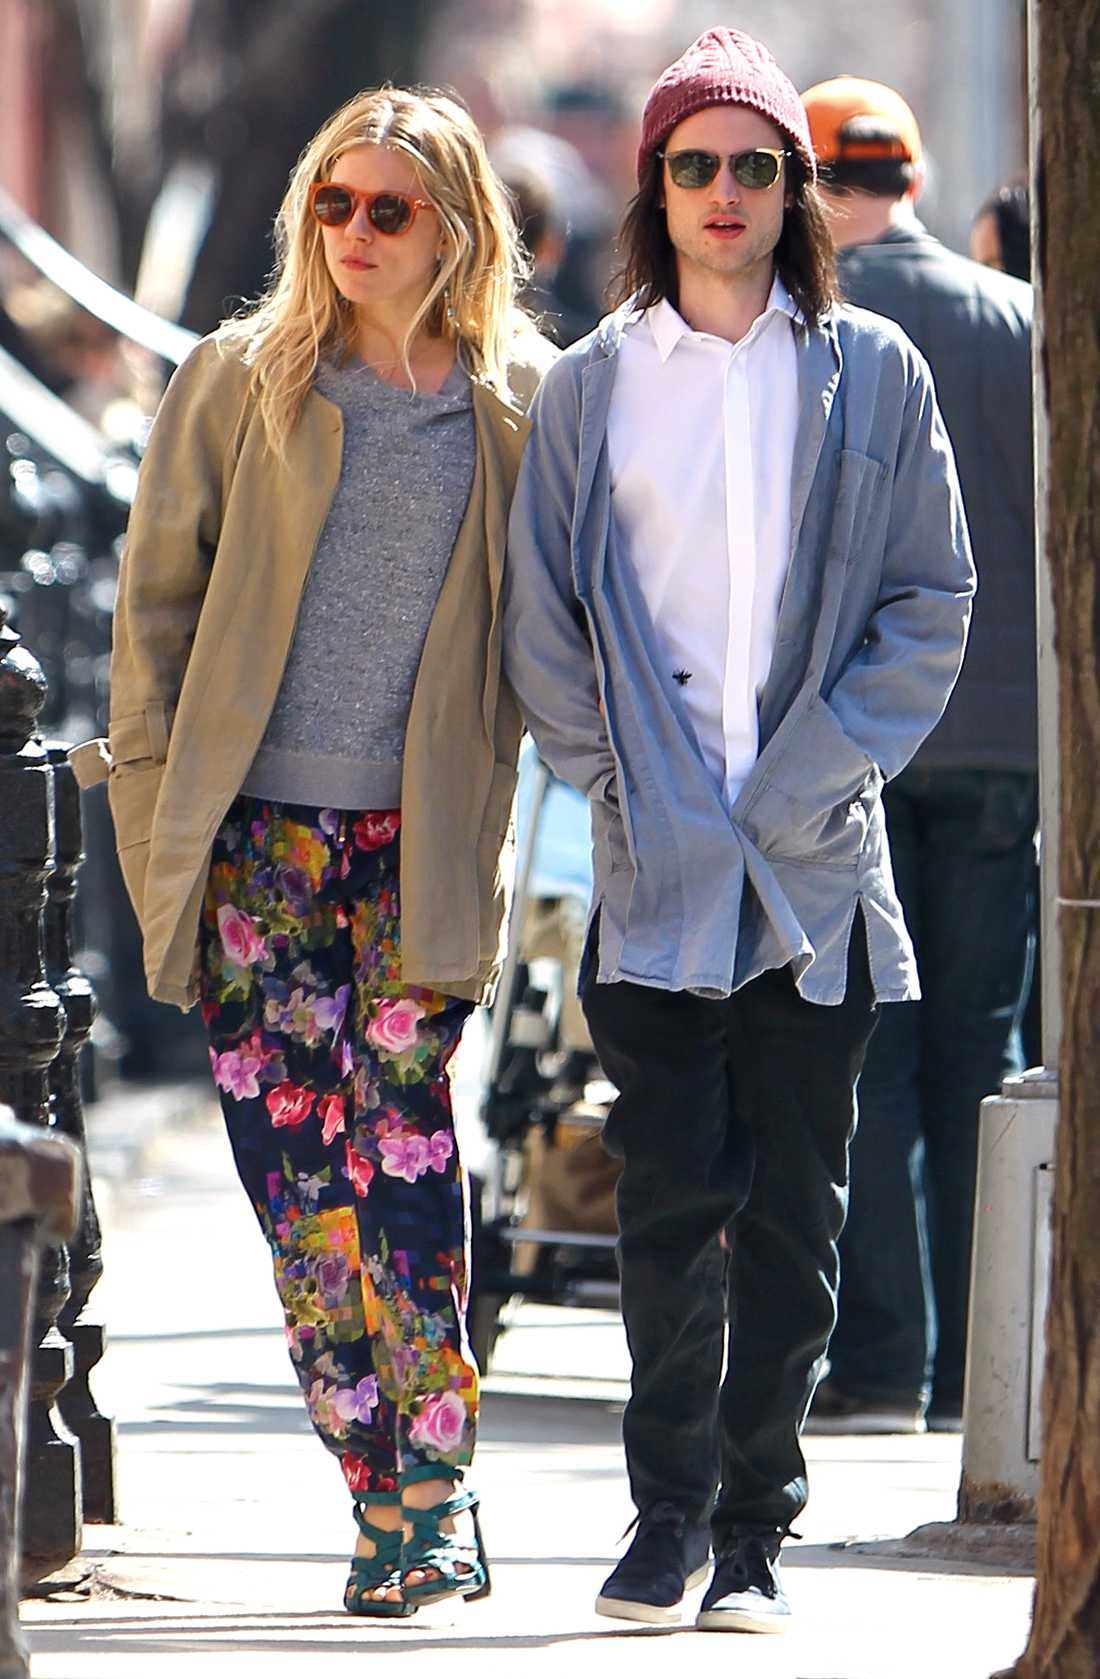 Sienna Miller På promenad med sin fästman Tom Surridge i New York.